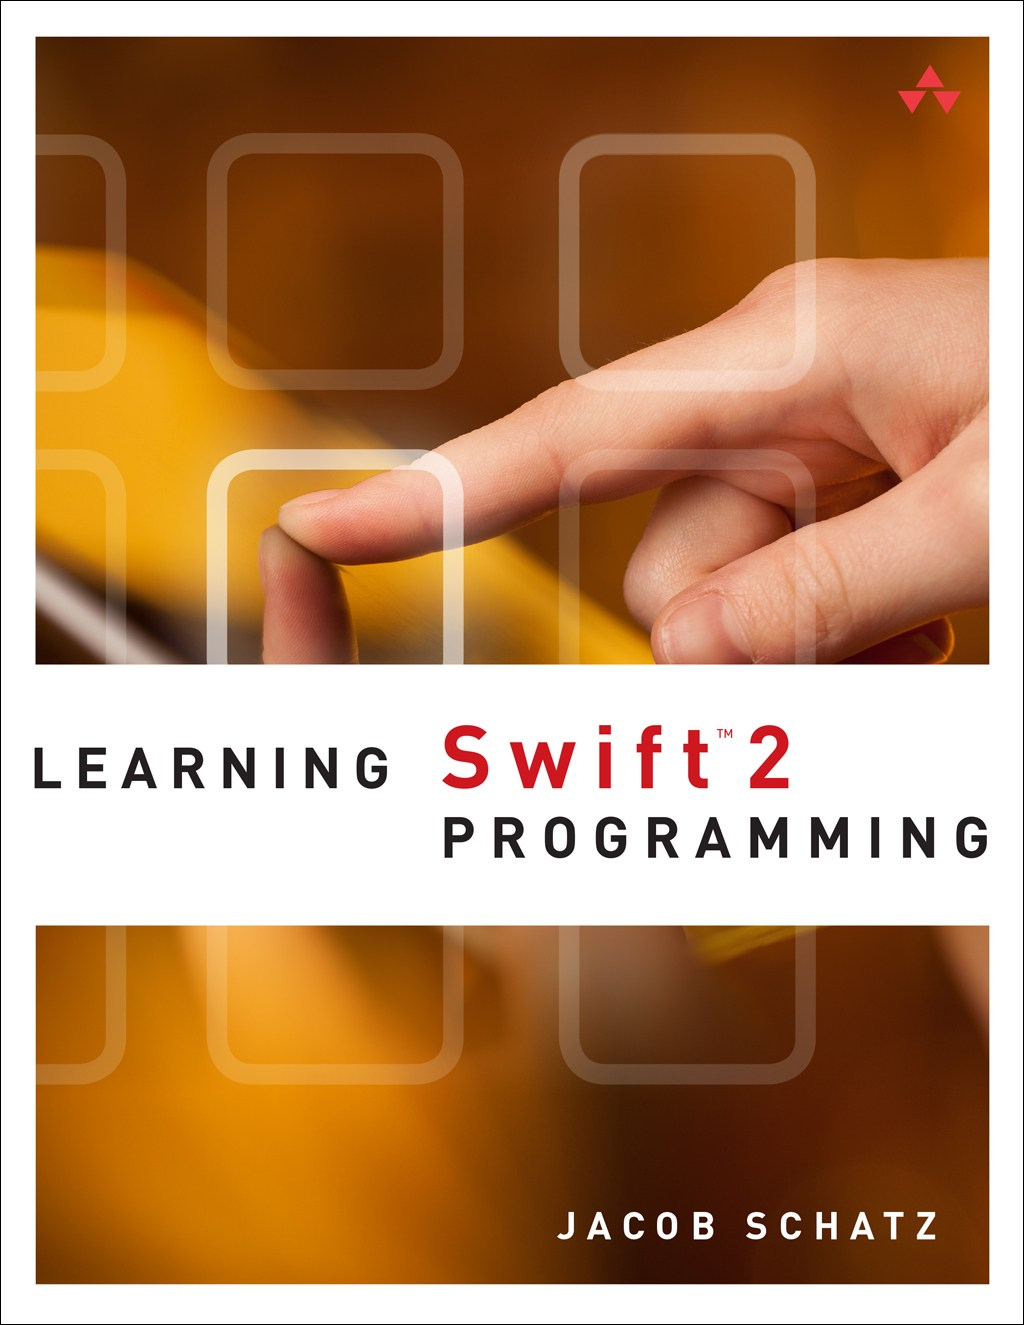 Learning Swift 2 Programming, 2nd Edition